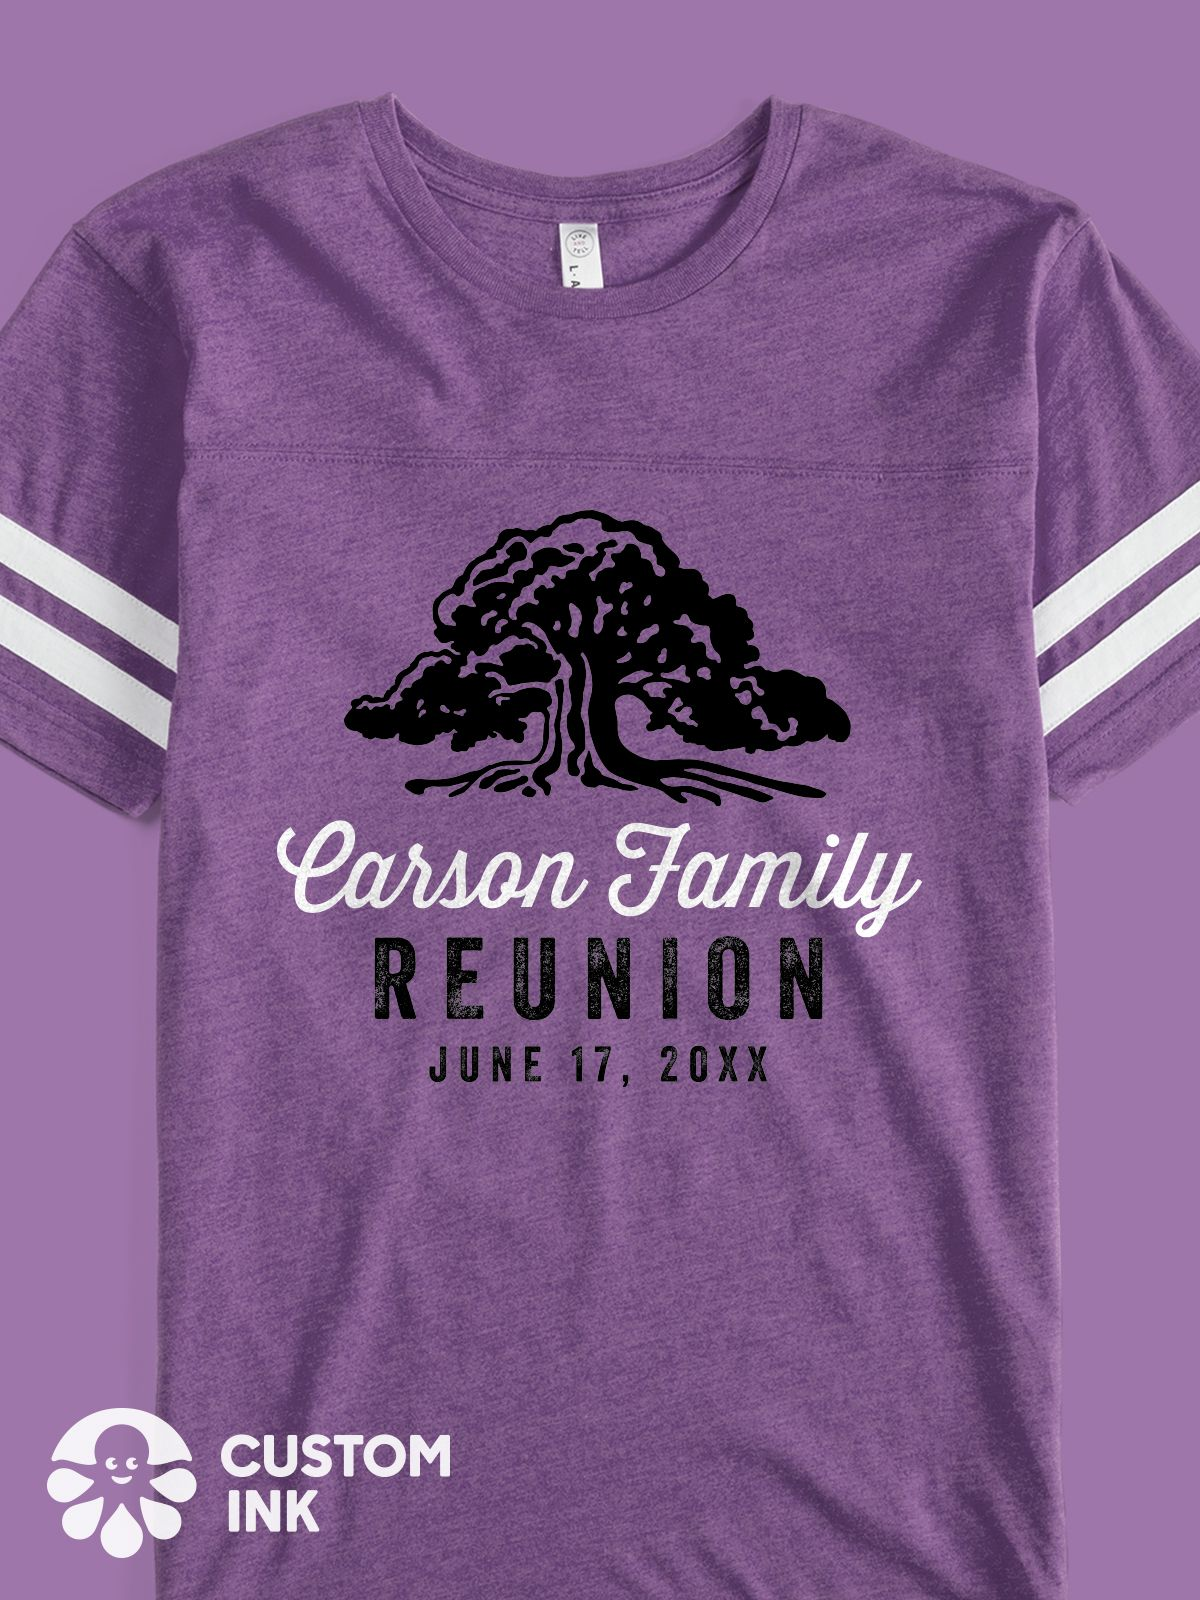 51d284c6e506 Great design idea for custom family reunion t-shirts, shirts, tees, tank  tops, bags, and more